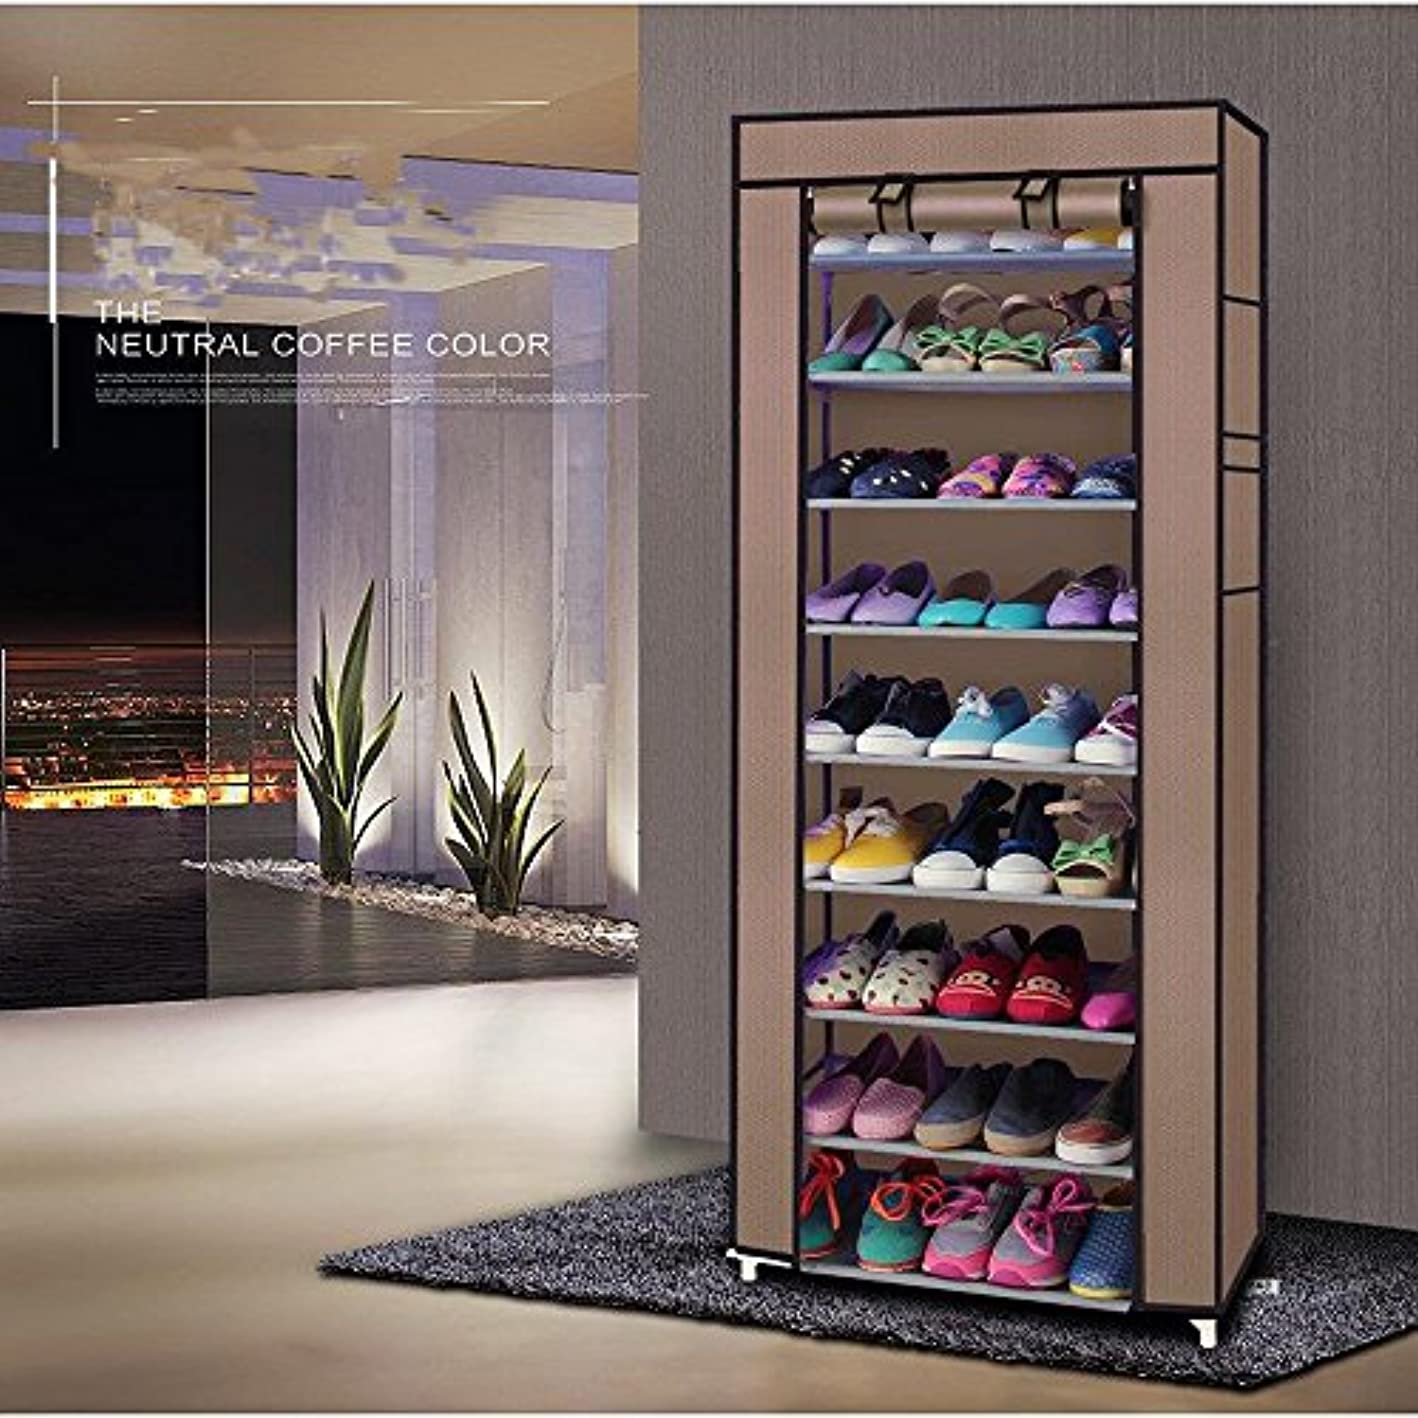 cosway 10 Tiers Shoe Rack with Cover Shoe Storage Cabinet Organizer 27 Pairs Shoe Tower Closet (Coffee)